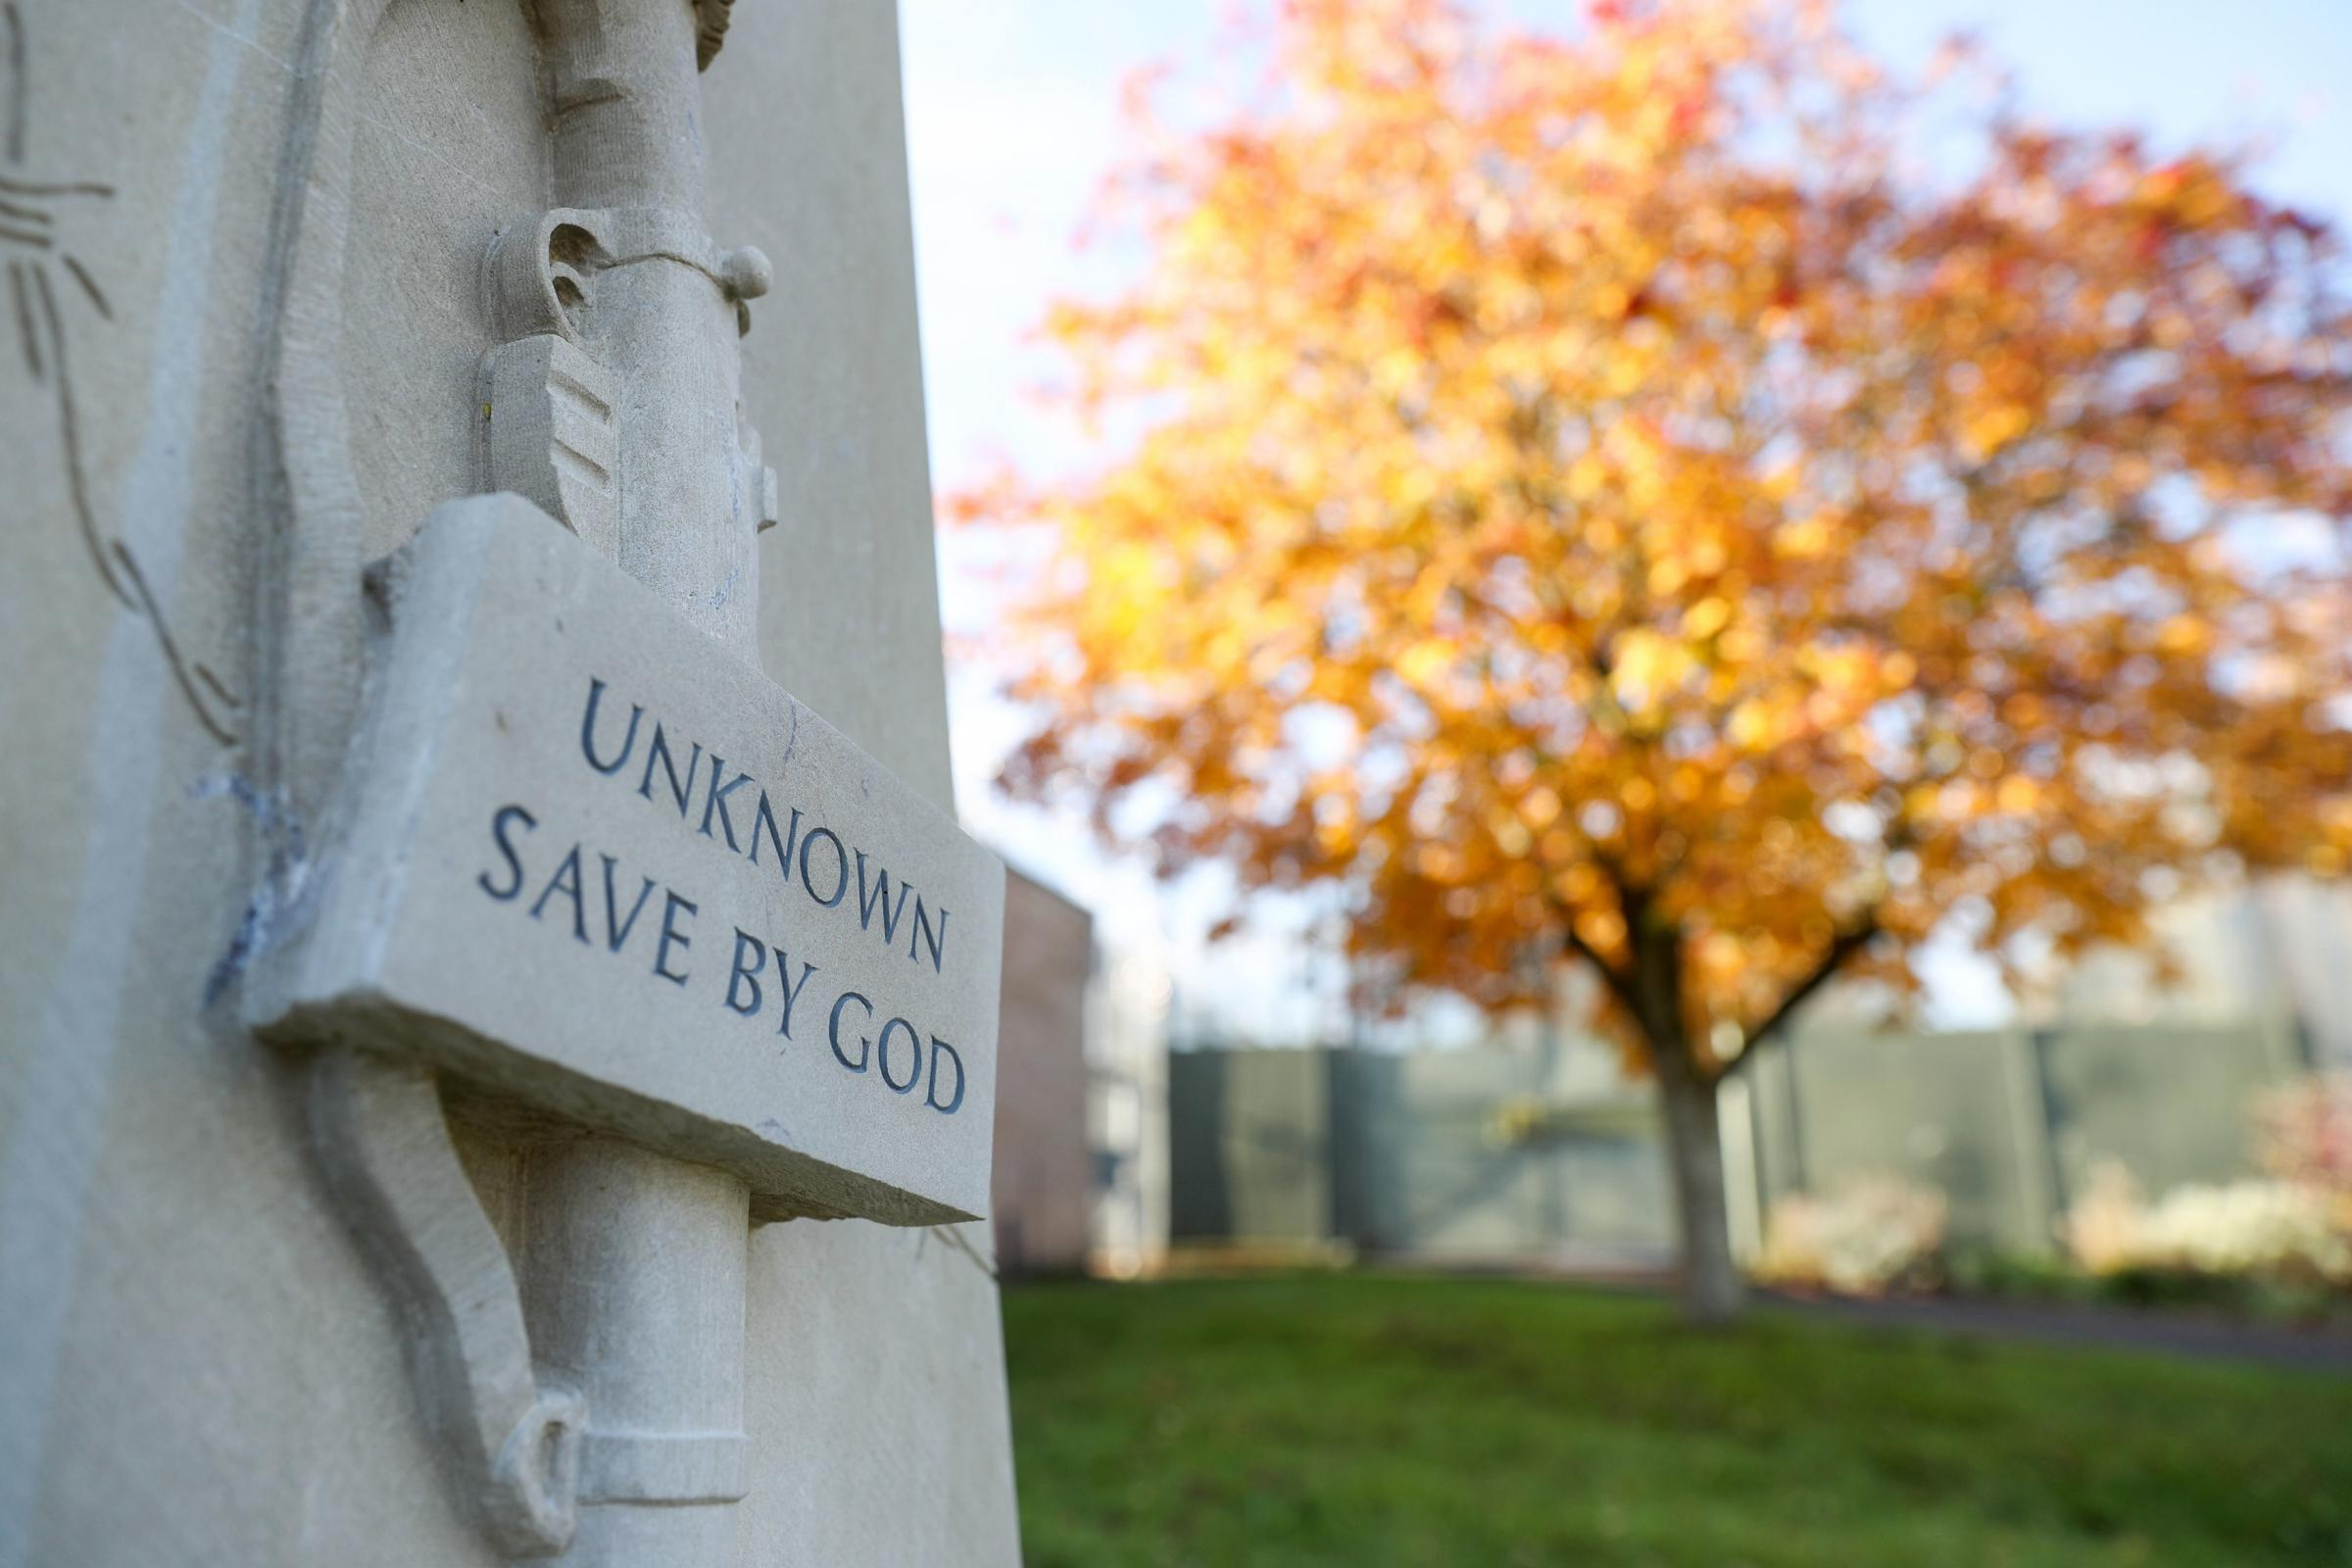 War memorial designed by prisoners is unveiled at Wiltshire jail